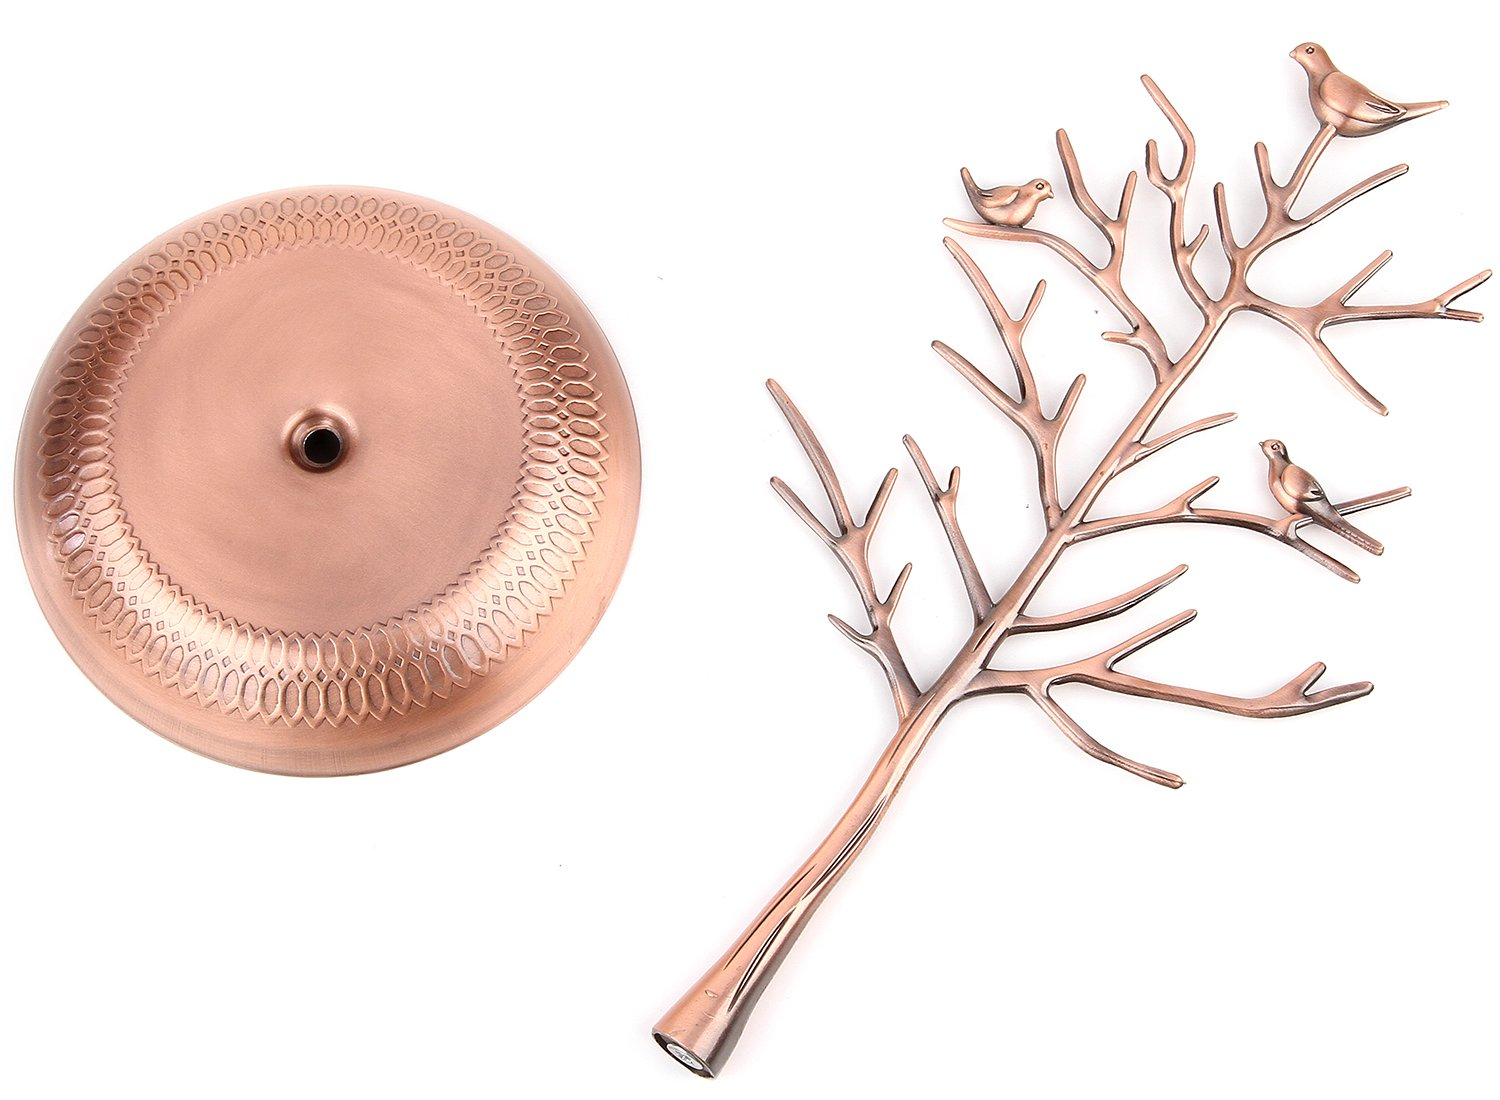 WELL-STRONG Earring Ring Holder Necklace Bird Decoration Jewelry Tower Tree for Girl Bronze by WELL-STRONG (Image #5)